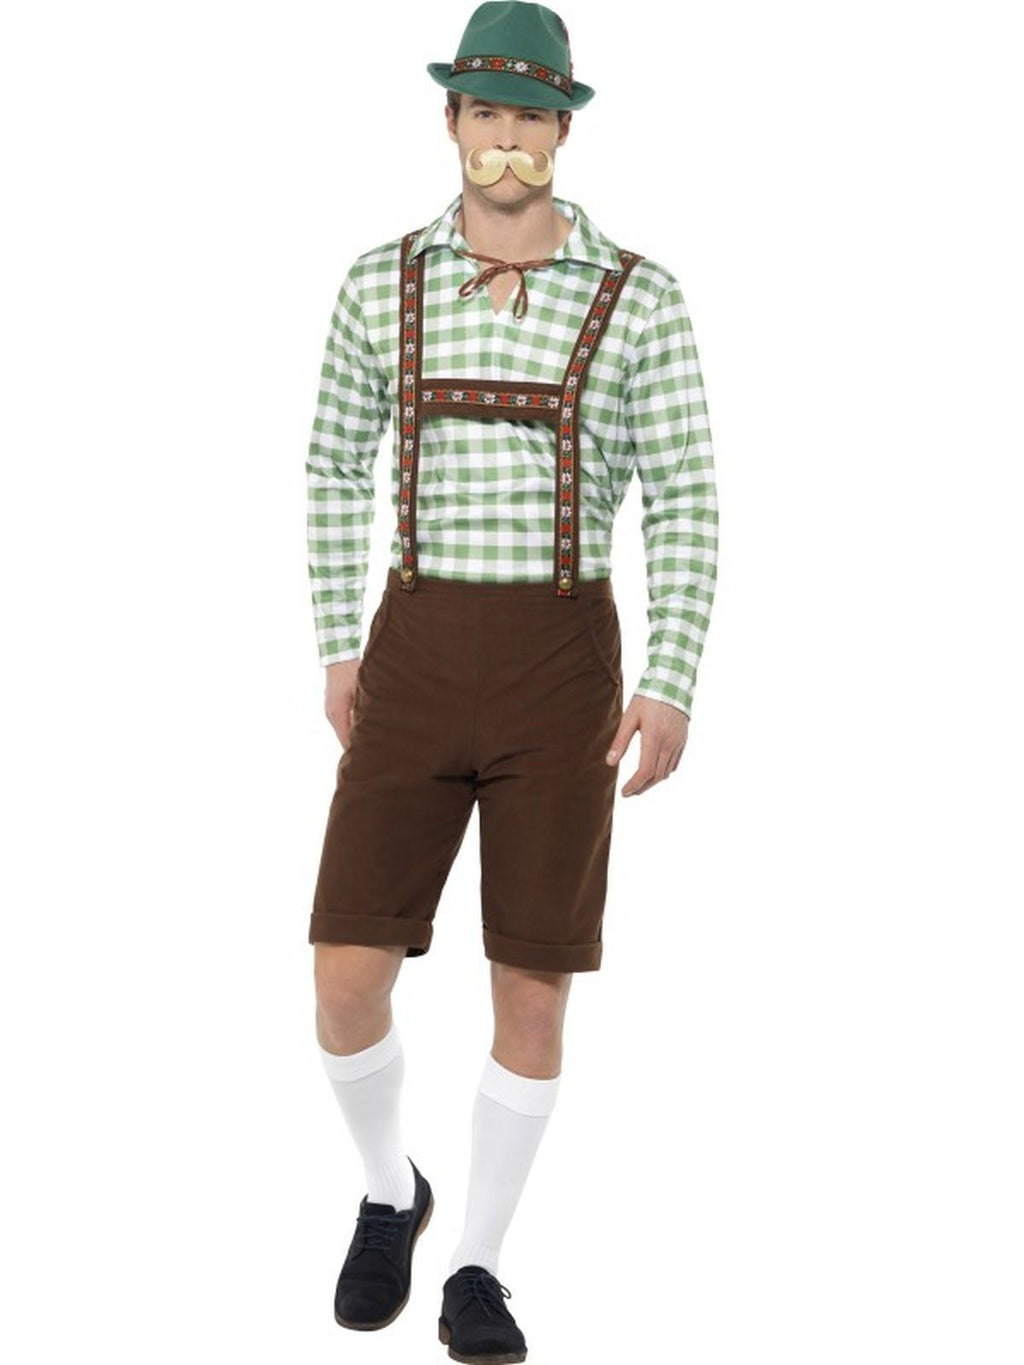 Alpine Bavarian Men's Fancy Dress Costume